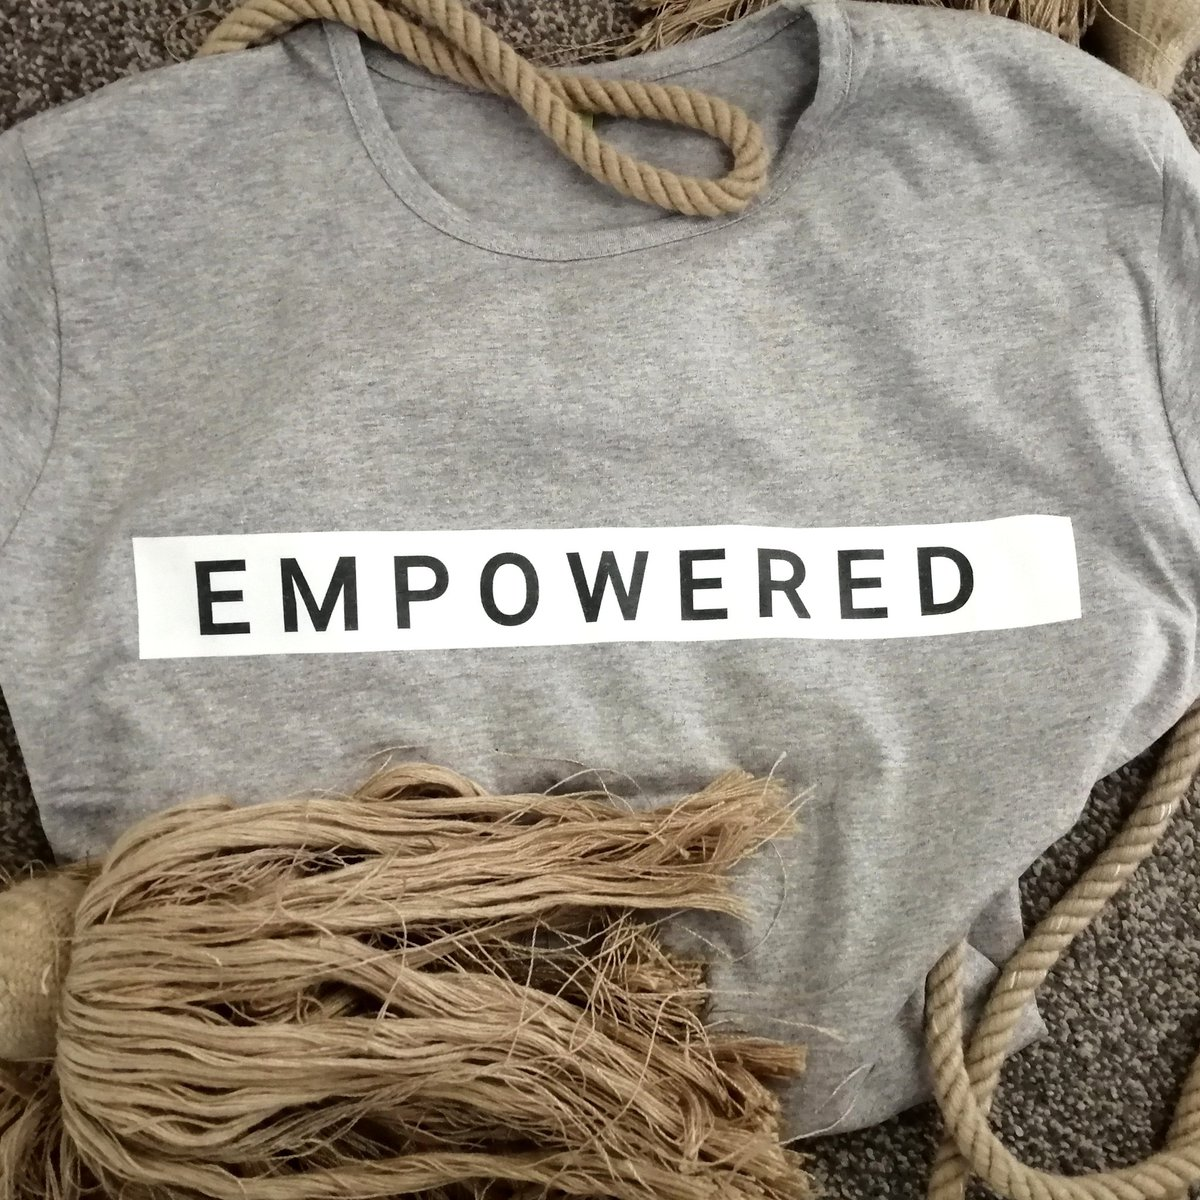 https://whitespacetreasures.teemill.com/   WhiteSpace Organic Cotton Clothing Range. Part of the Circular Fashion Revolution. New for 2020 the Ladies EMPOWERED Tee. https://whitespacetreasures.teemill.com/  #styleinfluencer #designyourown #hoodies #tshirts #tshirtdesign #circularfashion #organiccottonpic.twitter.com/8gYnCsfK8R